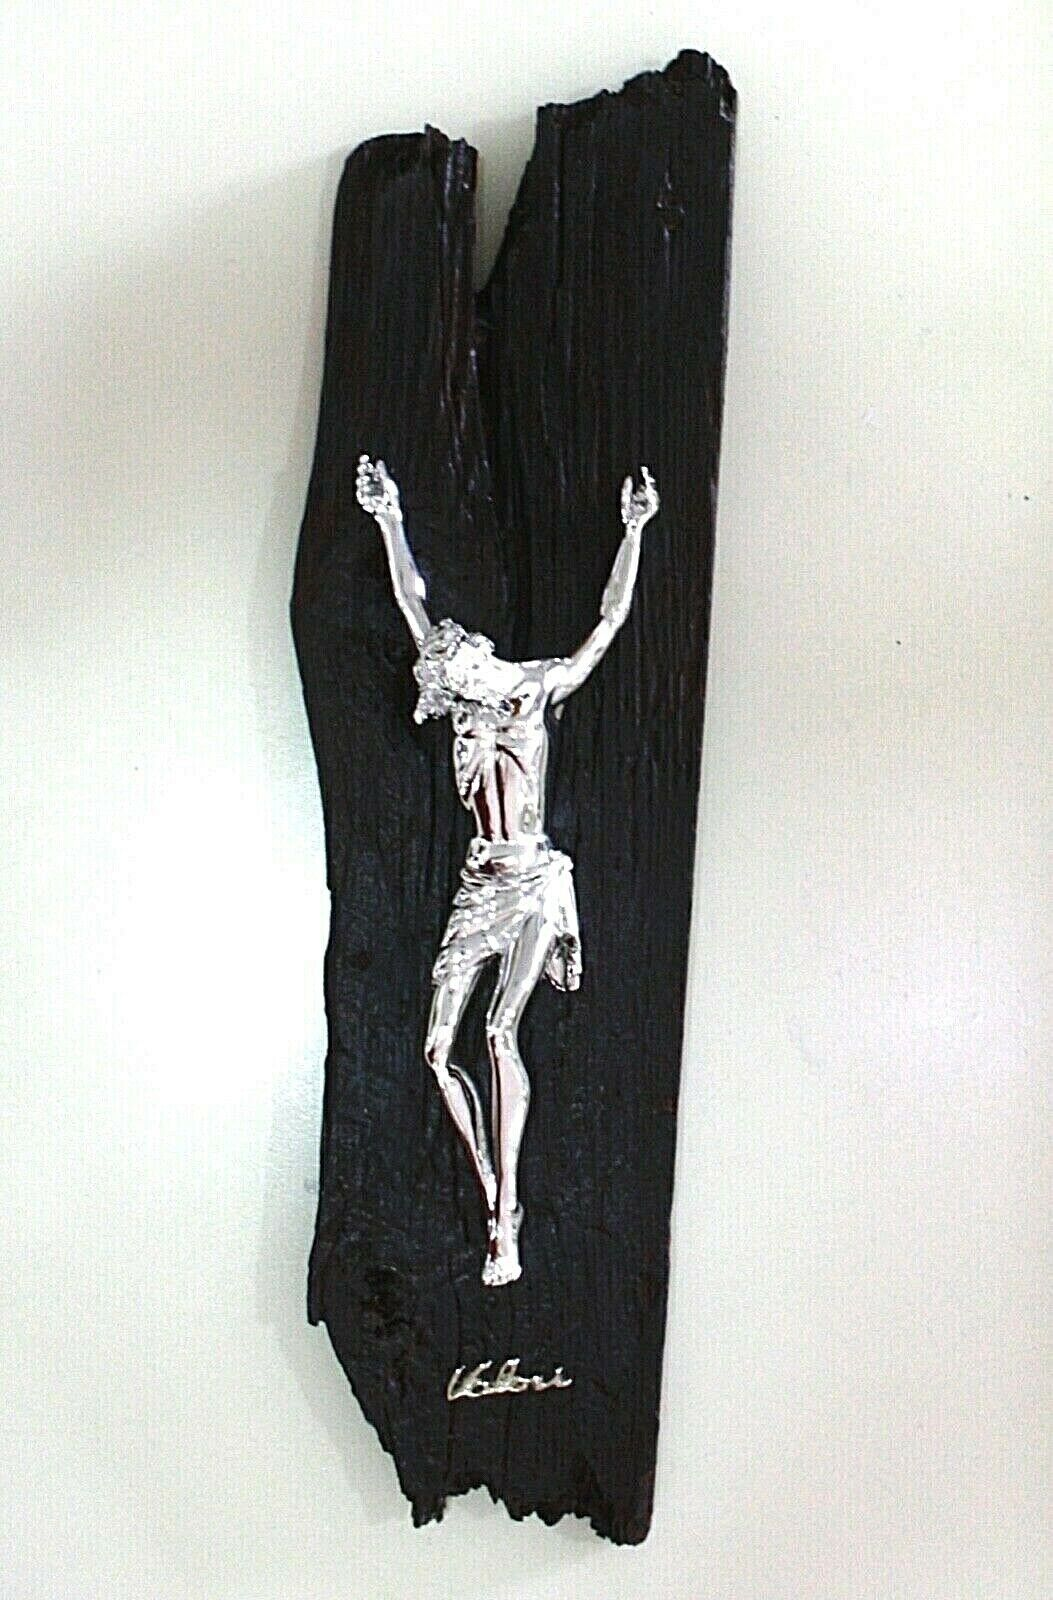 STYLIZED WALL CRUCIFIX, BLACK PAINTED WOOD BEAM, CHRIST, 16.5 INCHES ITALY MADE